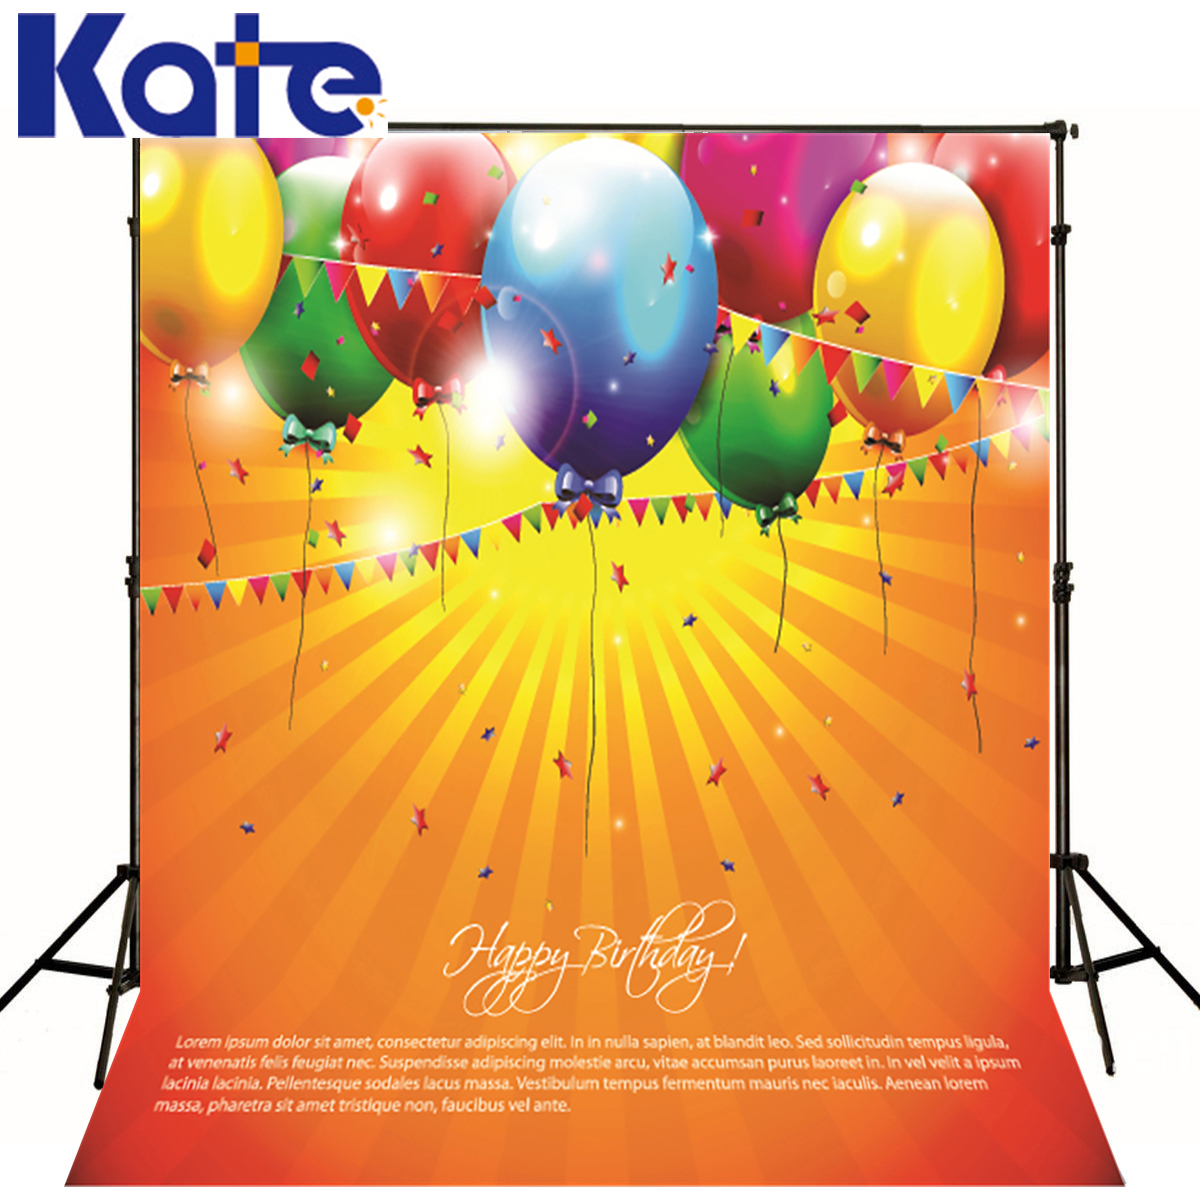 Kate 5x7ft Birthday Photographic Background Balloons Party Birthday Backdrop Photography Newborn Microfiber Studio Backdrop kate shabby window backdrop for photography portable cotton photographic studio props gothic indoor background 5x7ft